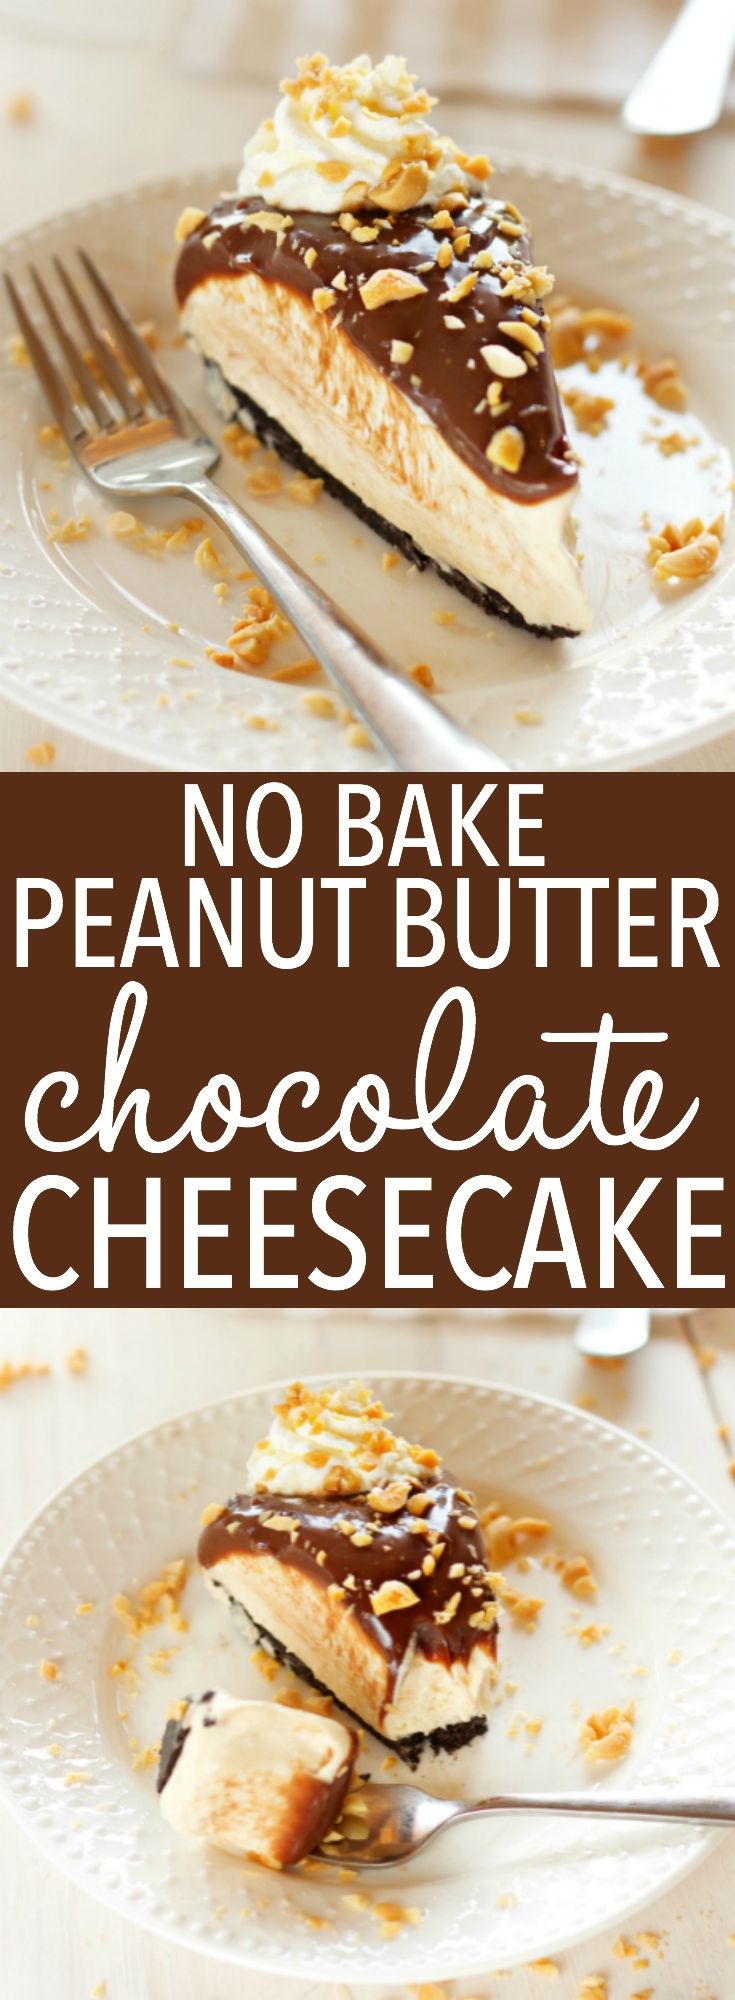 An Easy No Bake Creamy Peanut Butter Chocolate Cheesecake with a chocolate cookie base, a creamy peanut butter cheesecake filling, & milk chocolate ganache! The perfect no bake peanut butter chocolate dessert! Recipe from thebusybaker.ca! via @busybakerblog